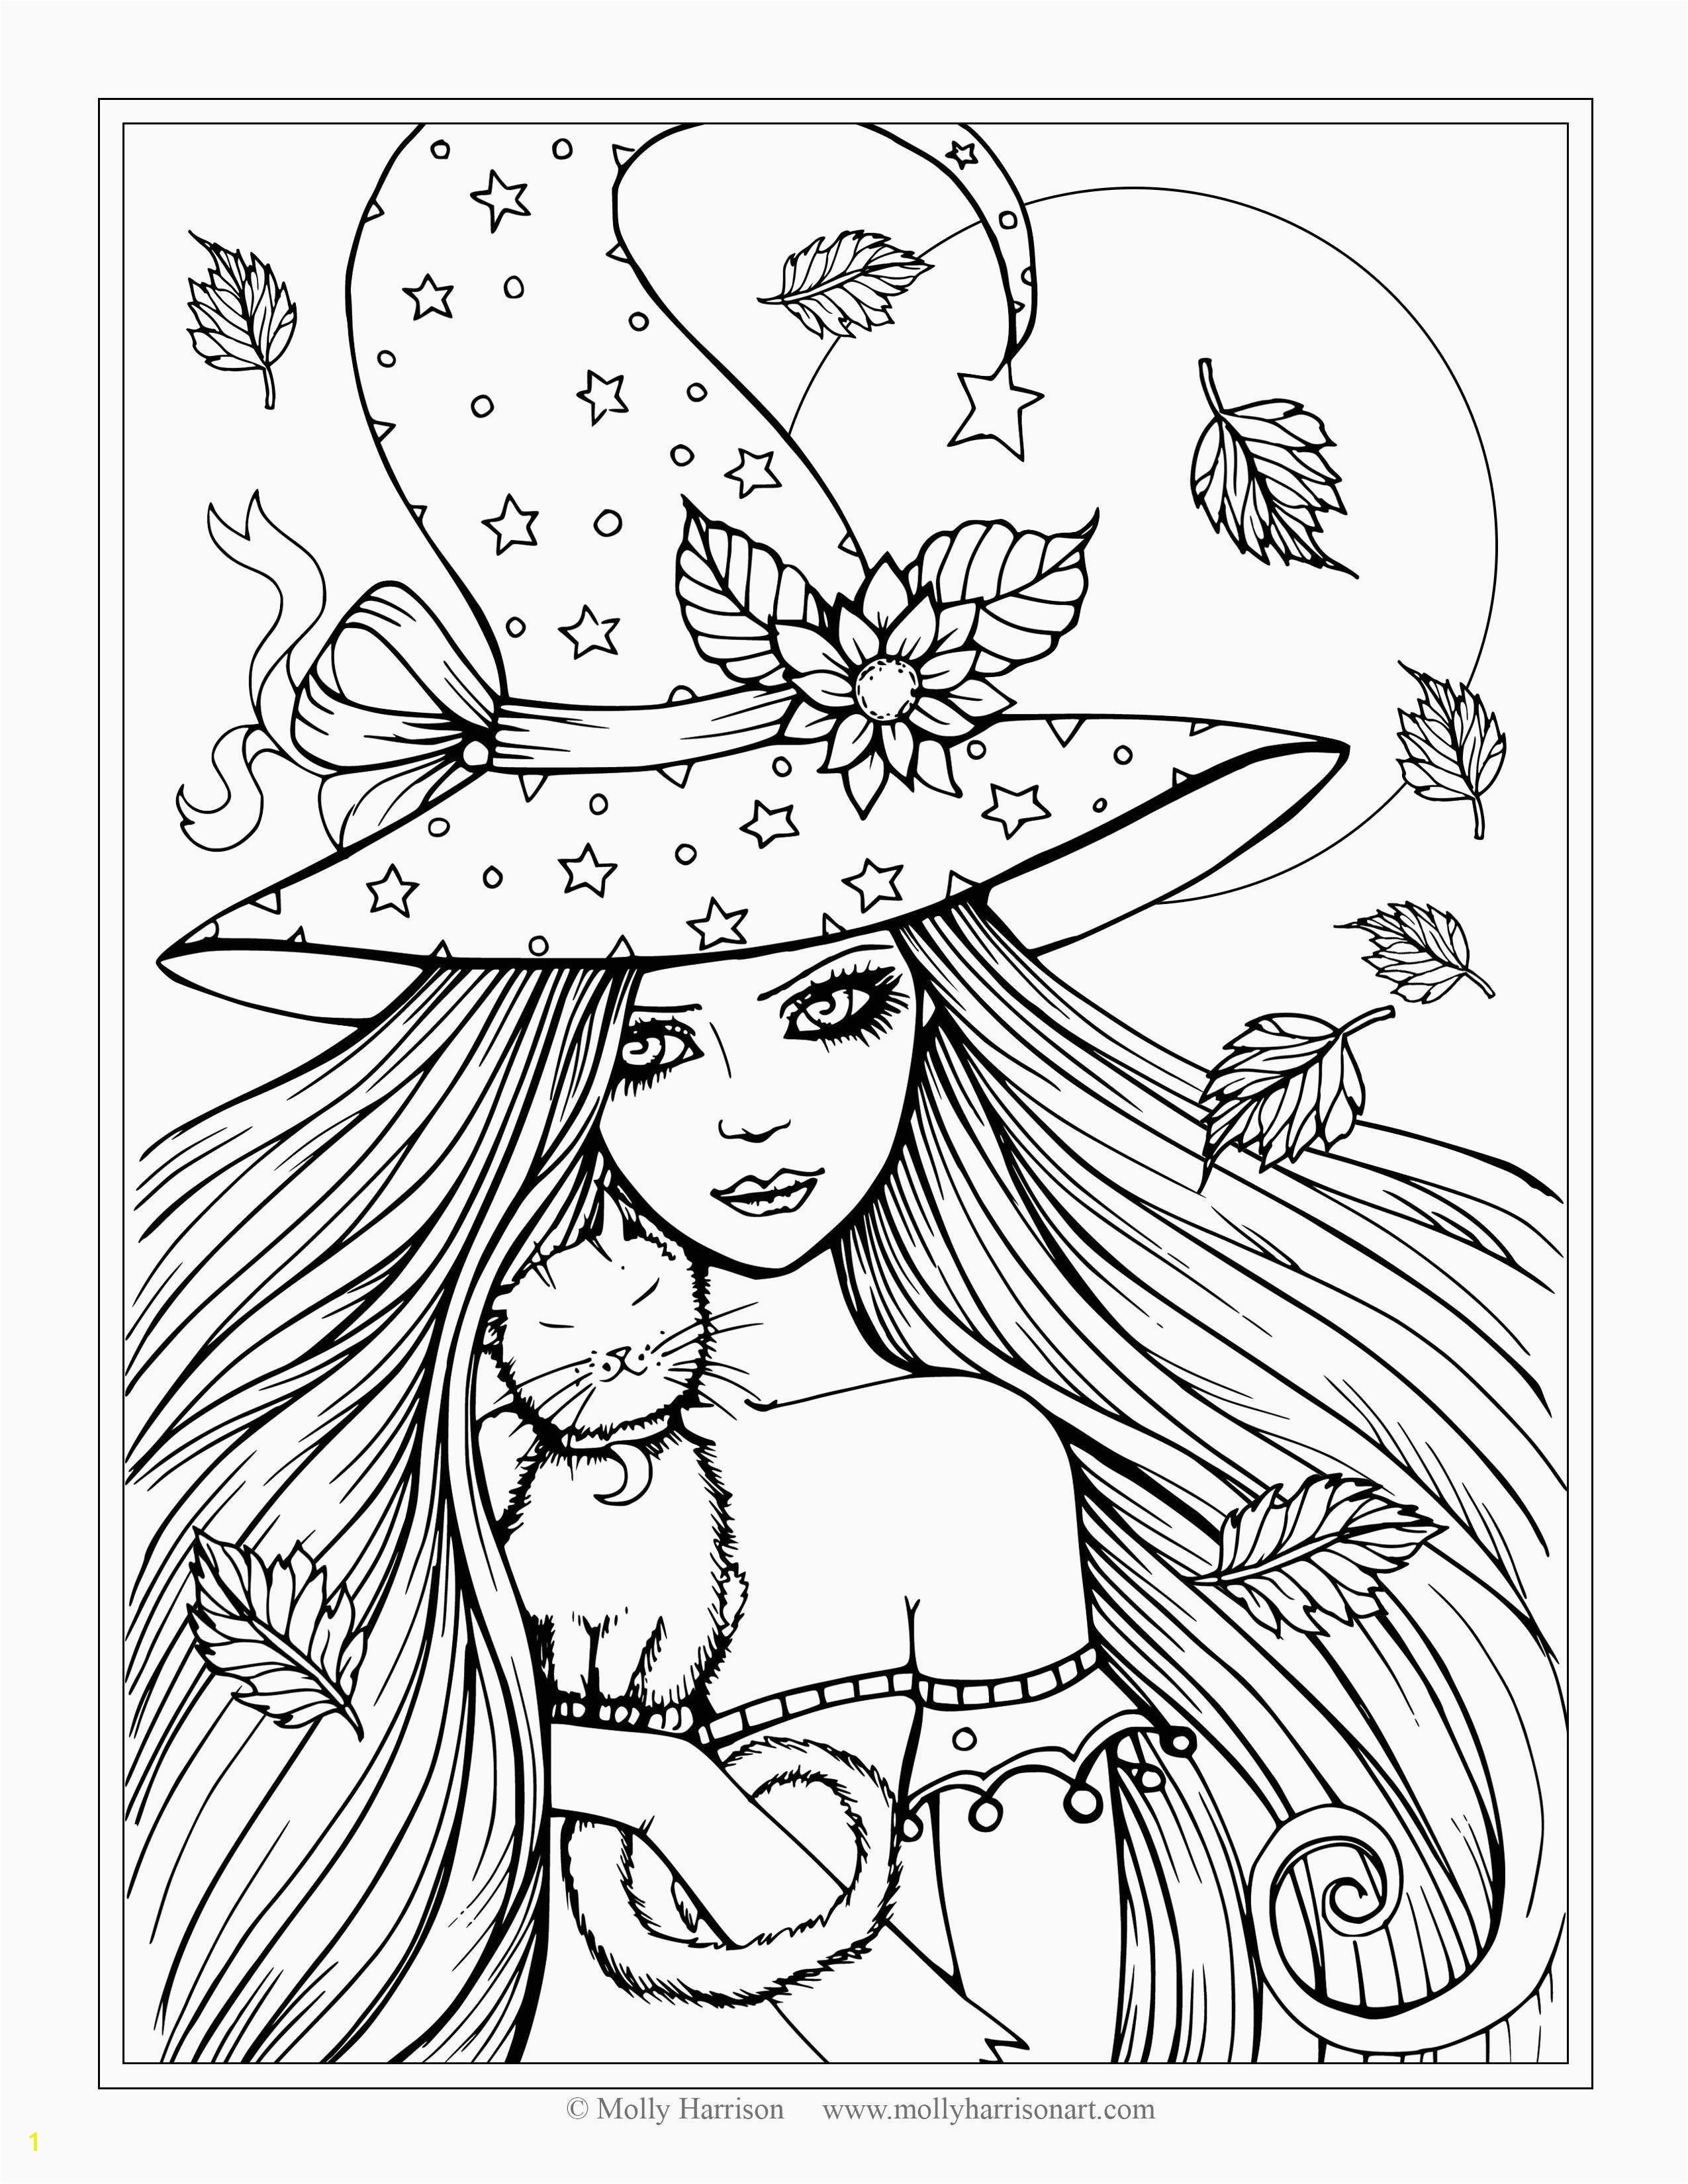 Coloring Pages for Kids Lovely Free Coloring Pages Elegant Crayola Pages 0d Archives Se Telefonyfo